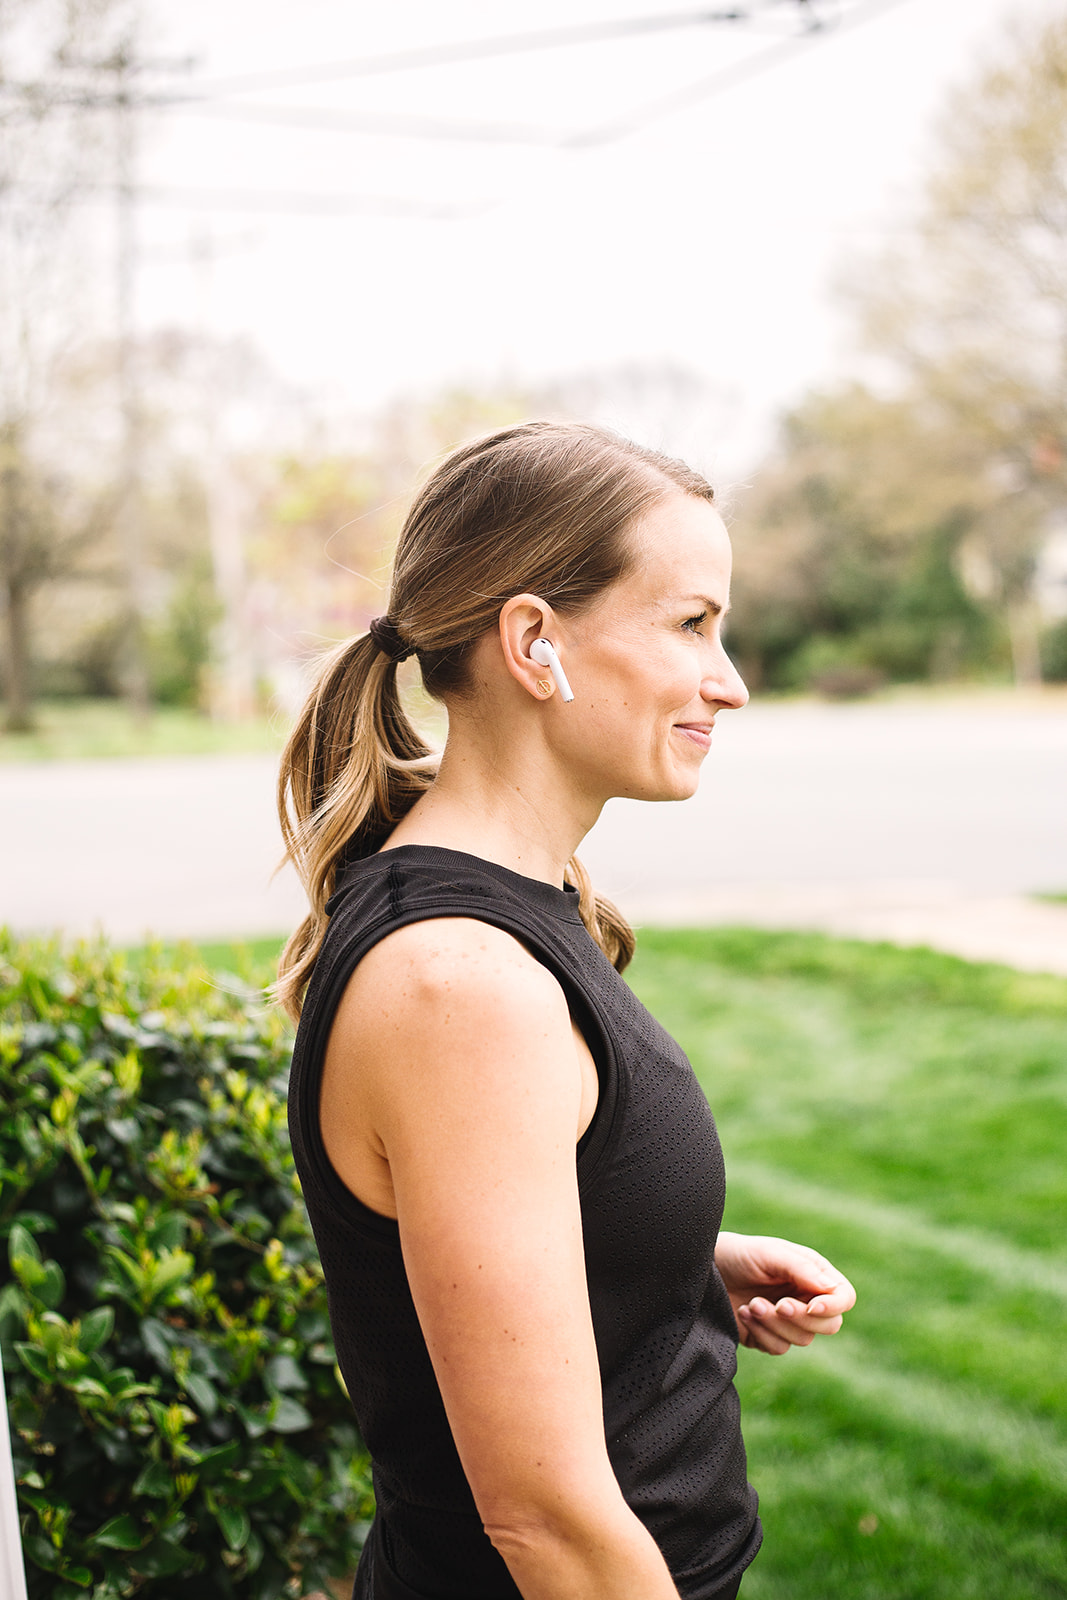 Apple Airpods Running Review A Marathoner Shares If It Works For